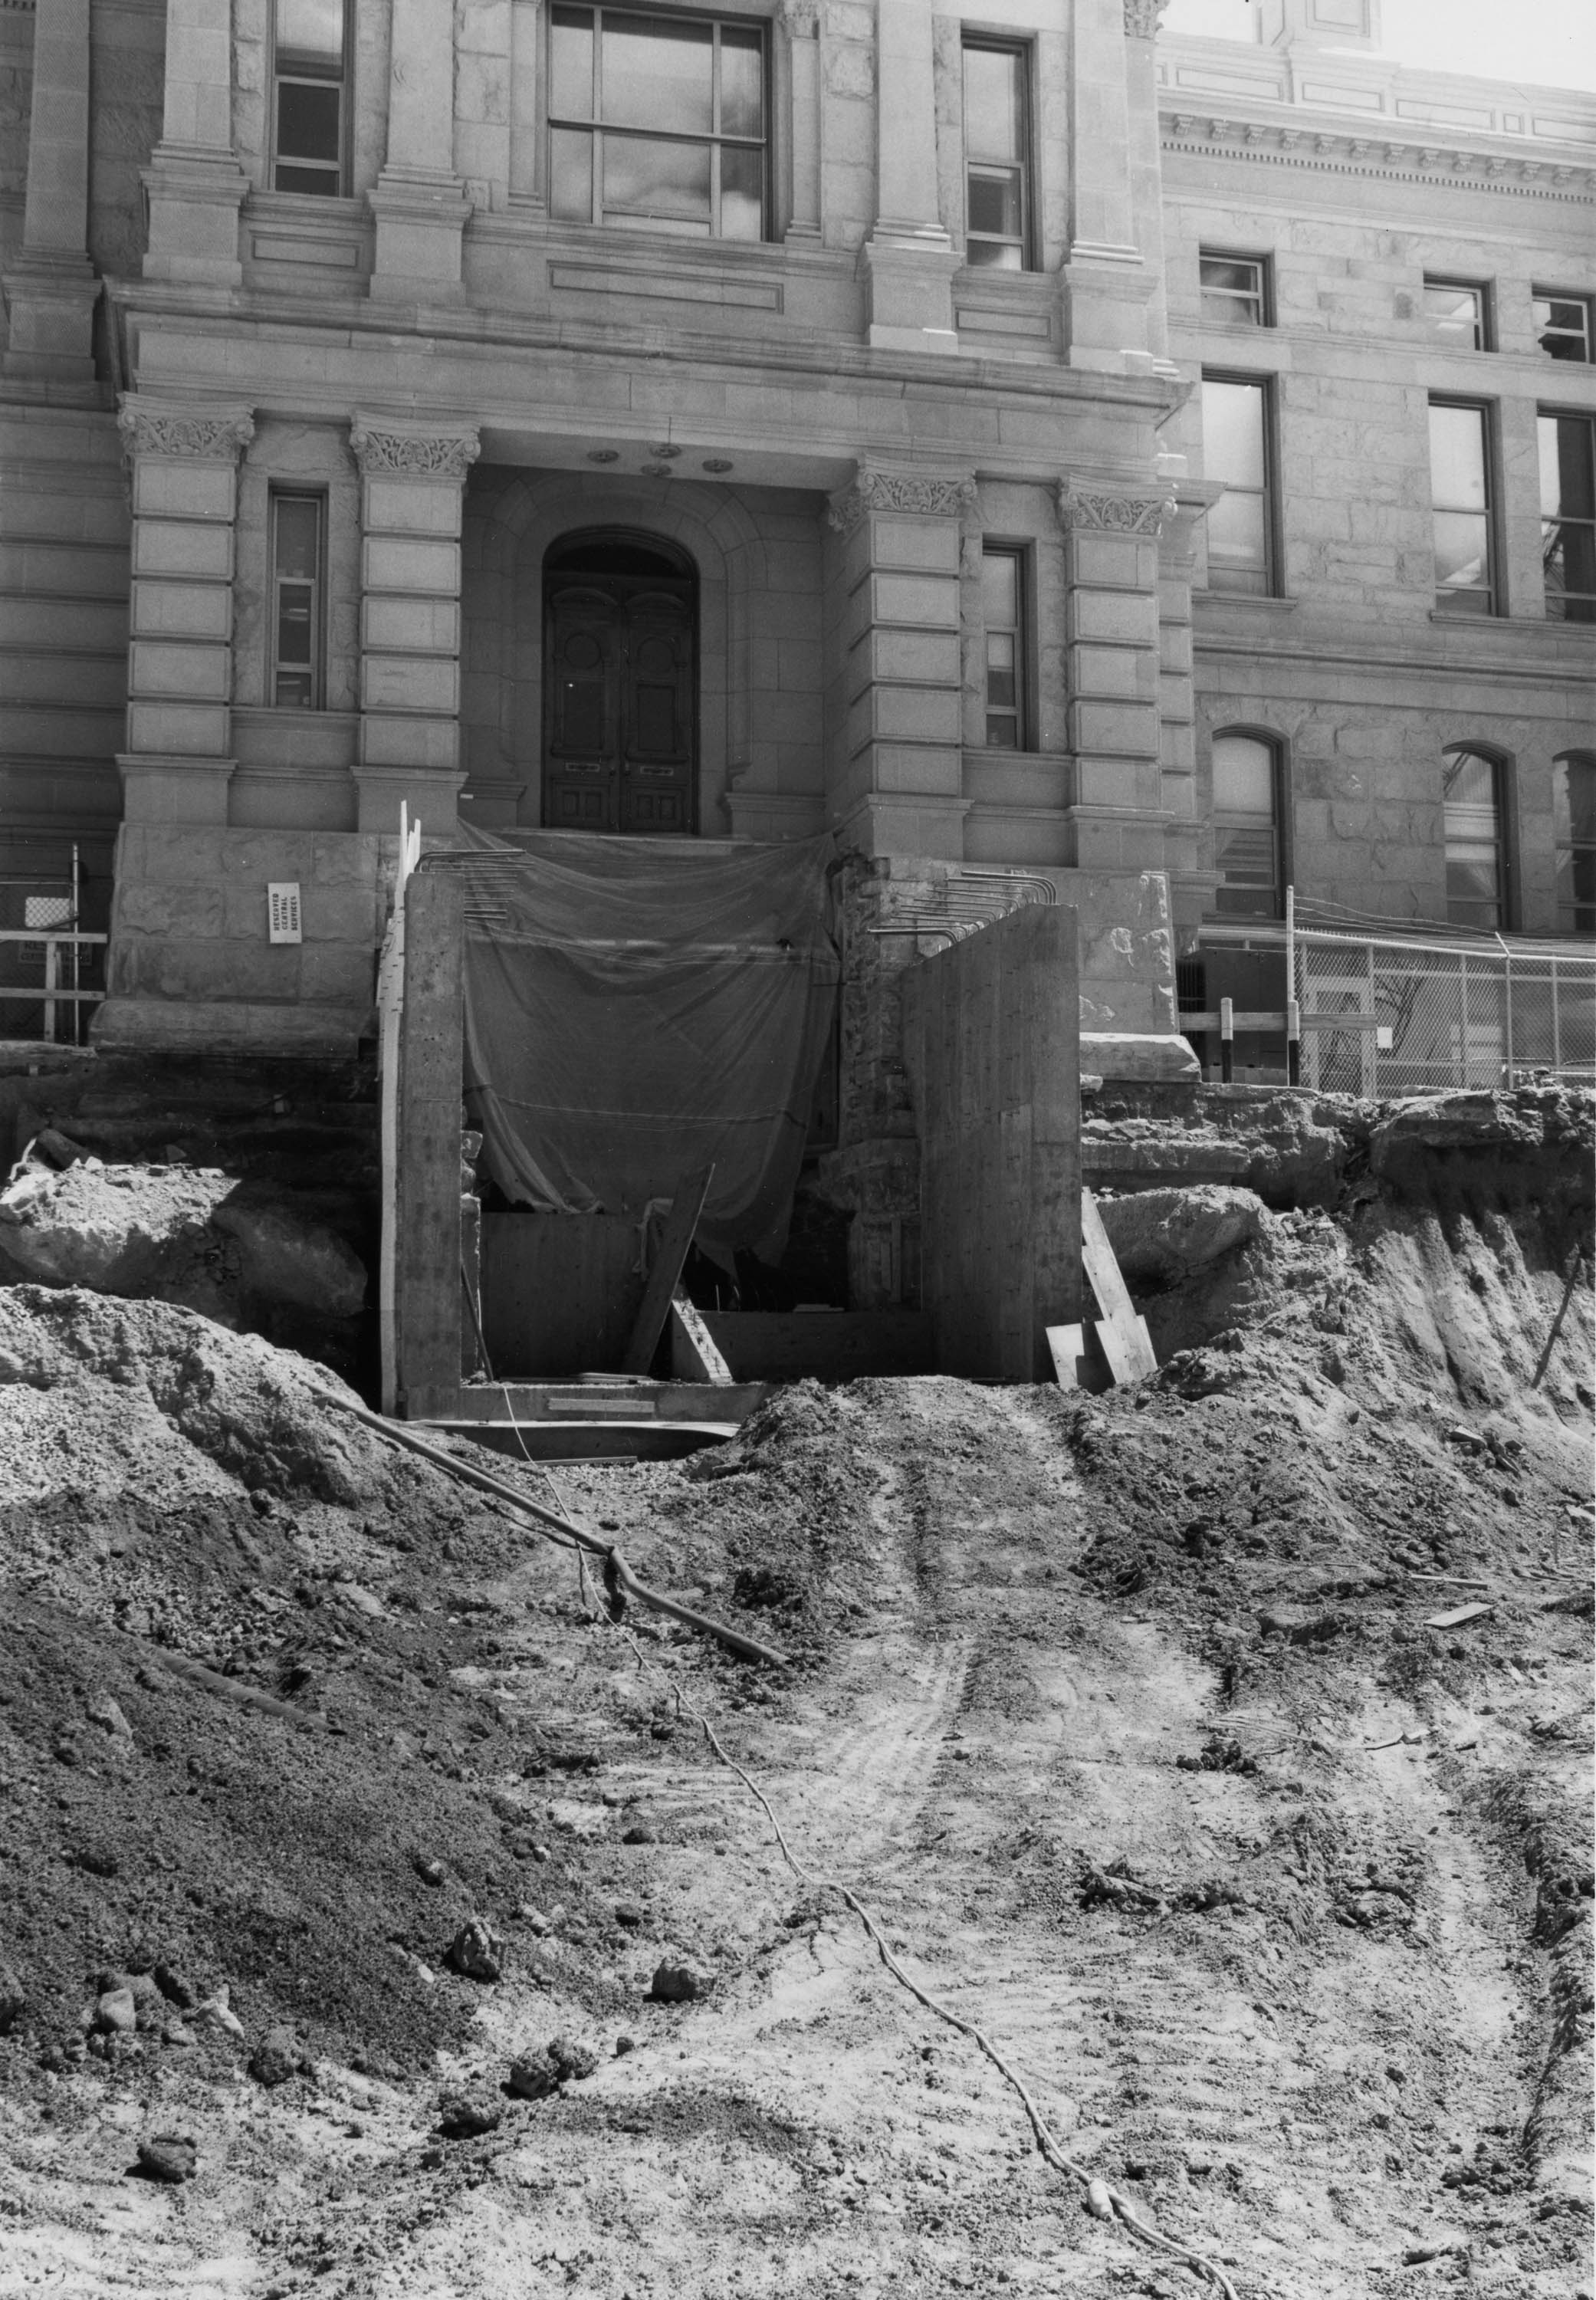 Work on Capitol Bldg steps north, 6-18-1981